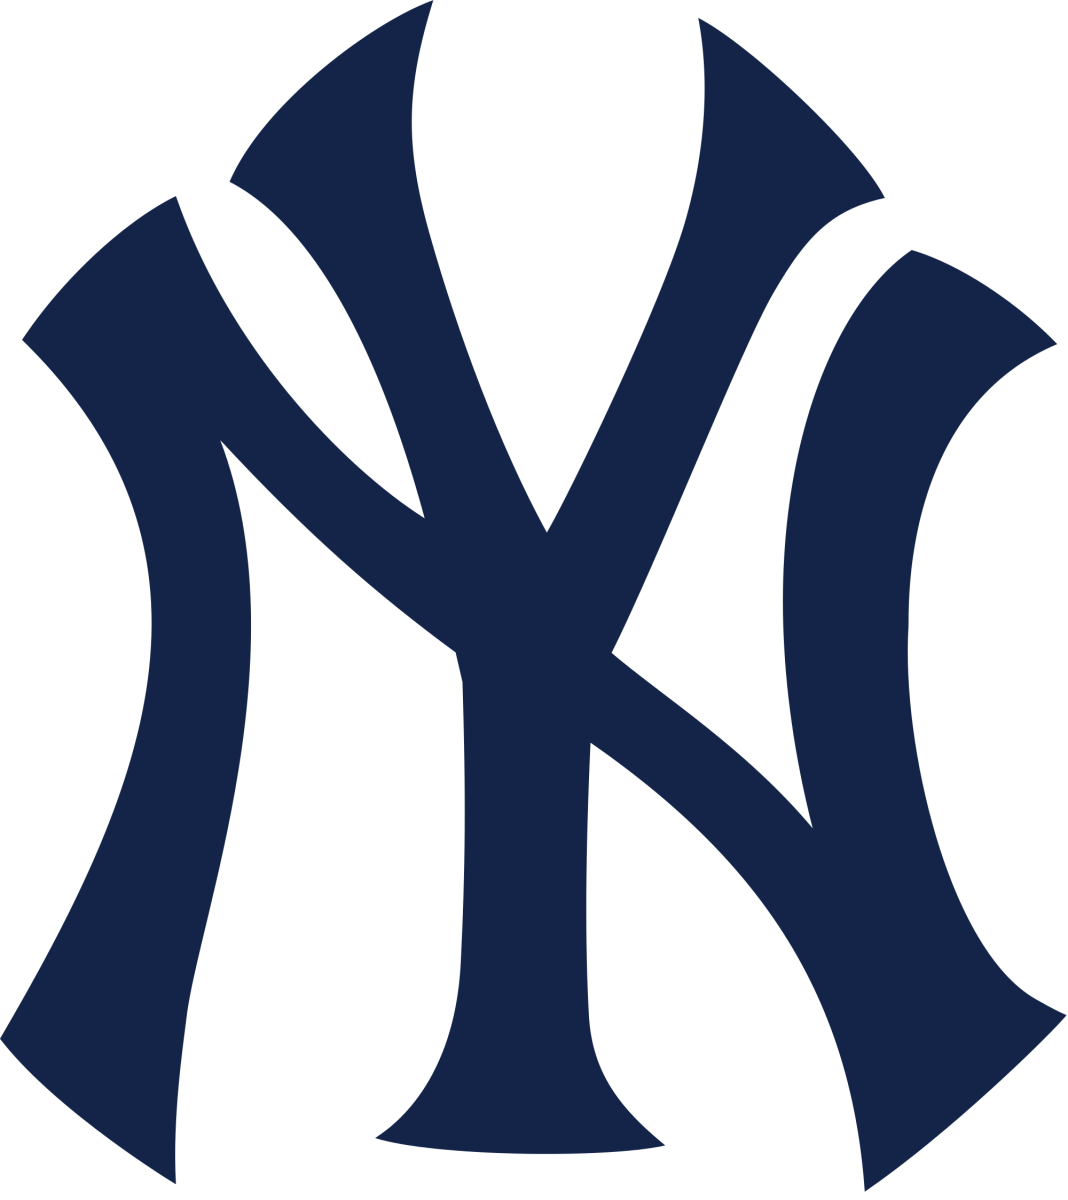 The New York Yankees Advance after an Absolutely Thrilling Series Finale